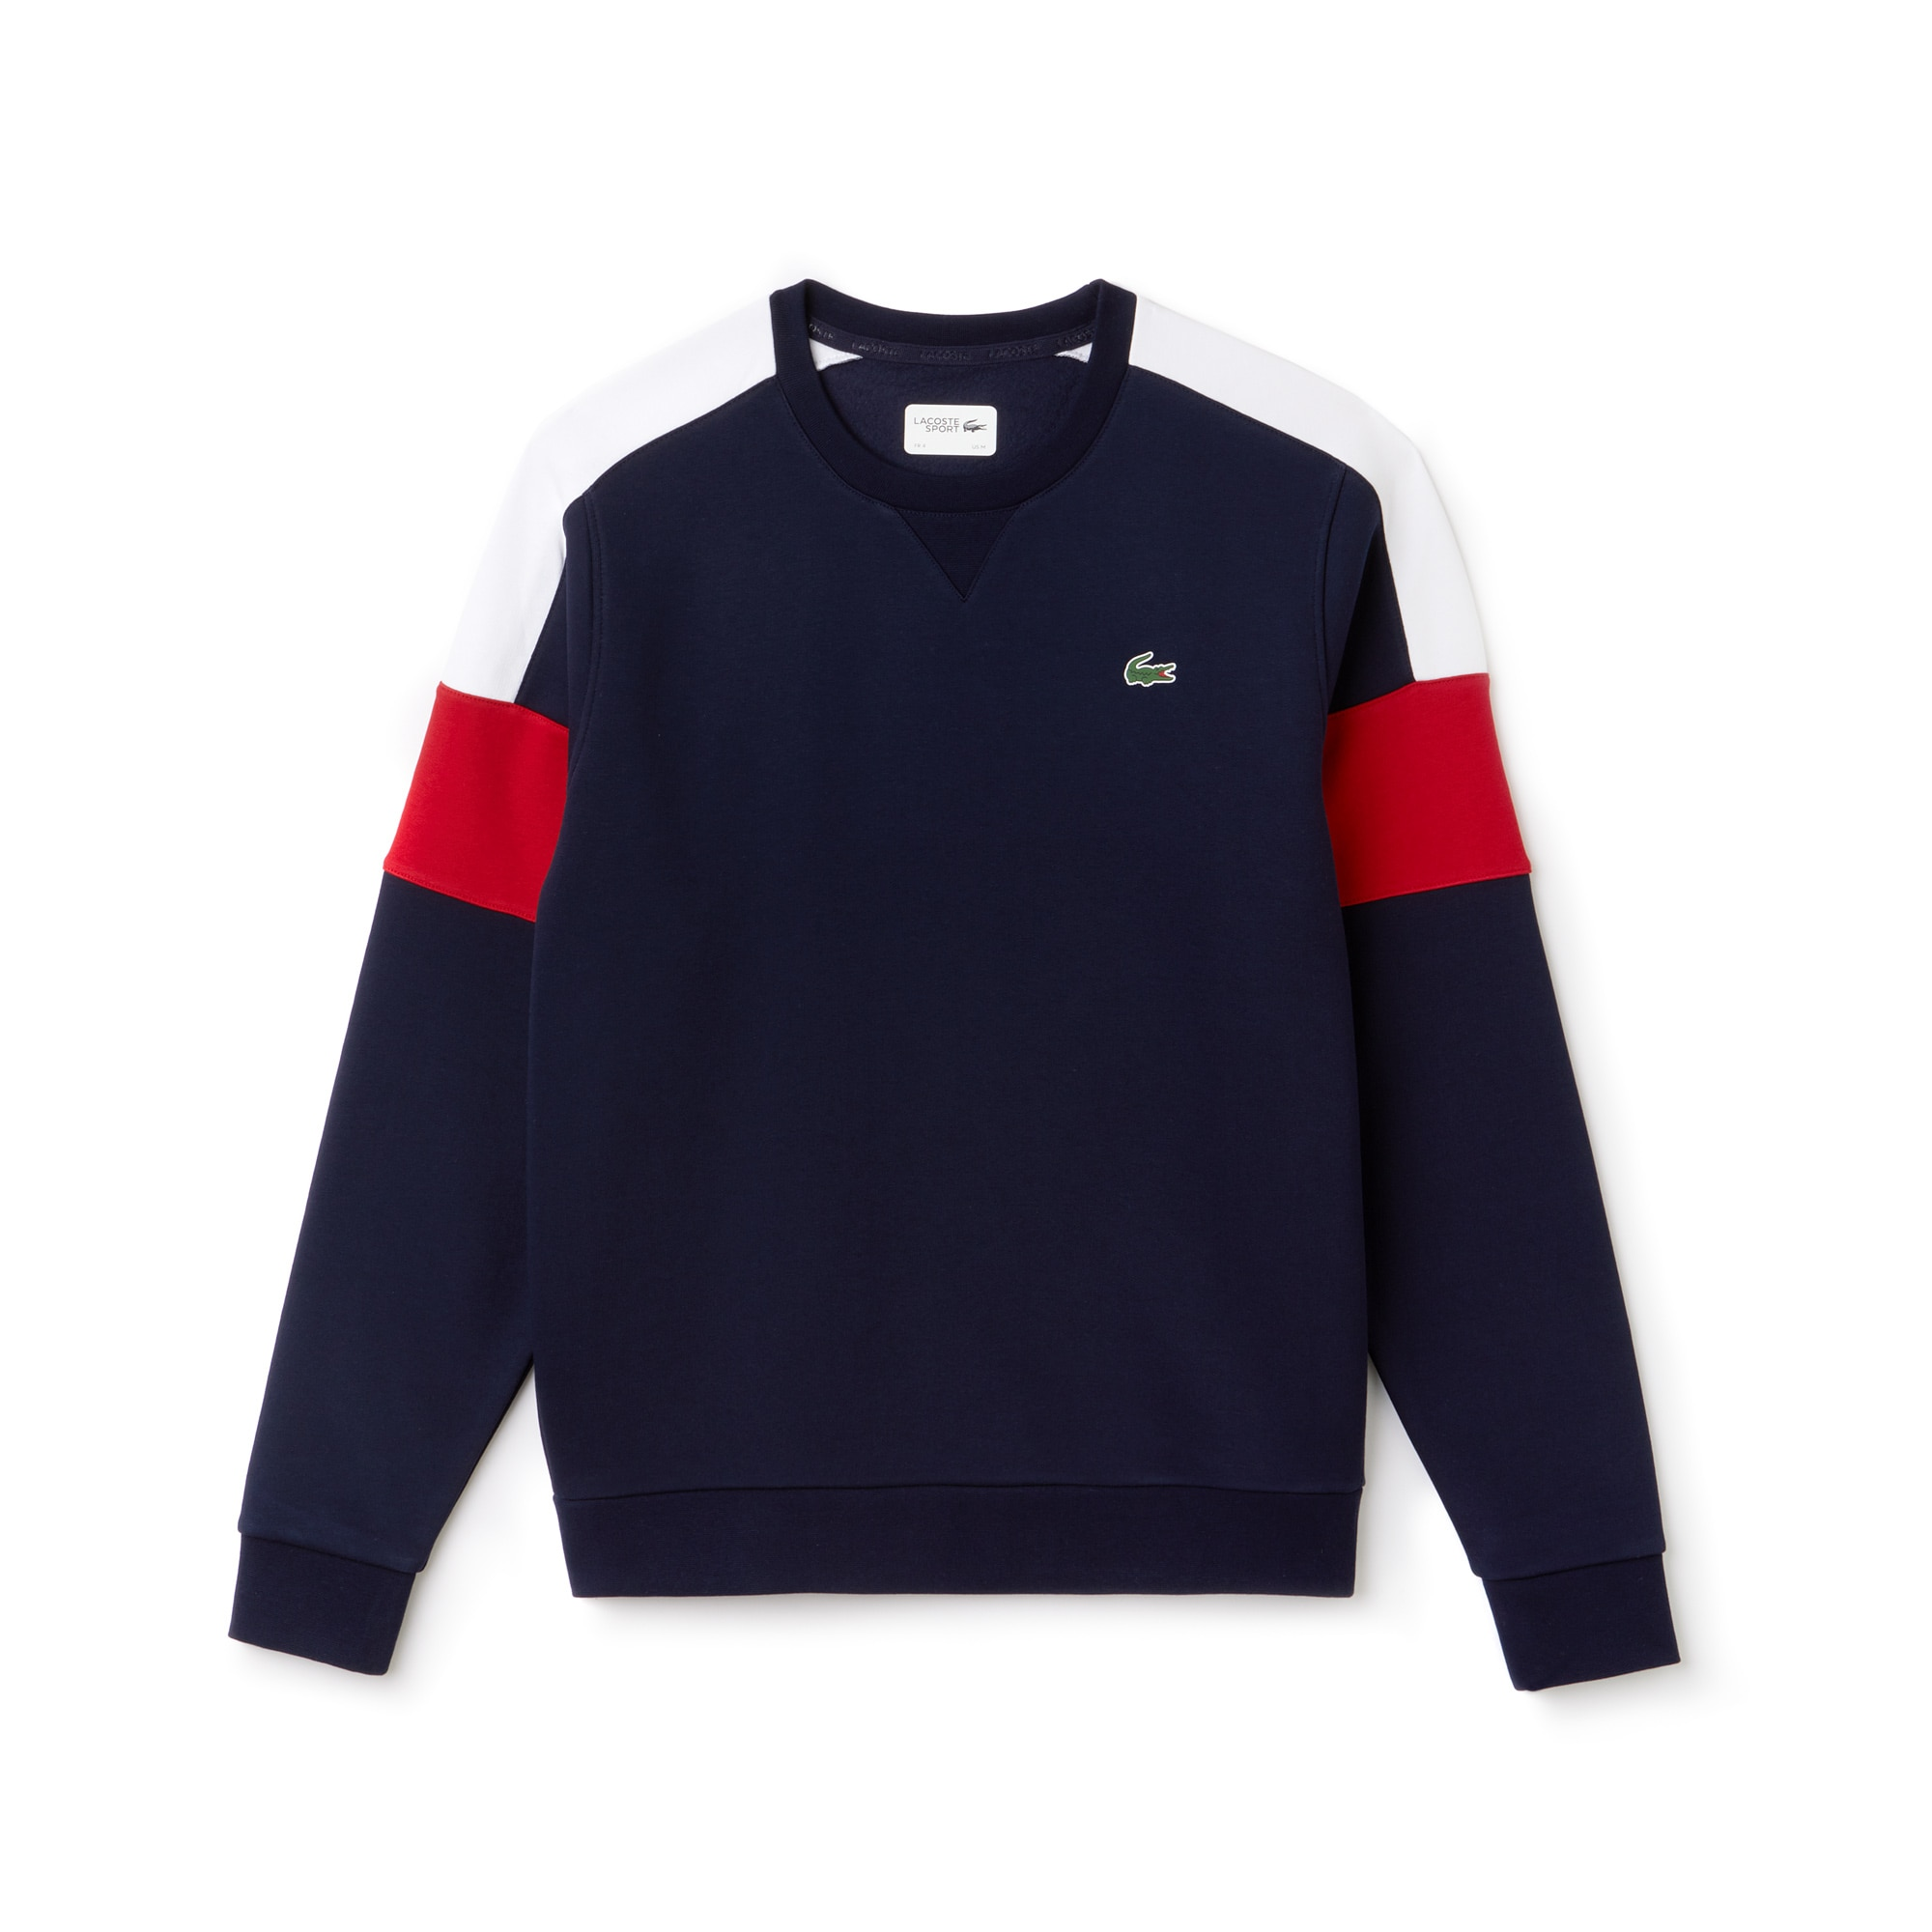 Felpa Tennis Lacoste SPORT in mollettone color block